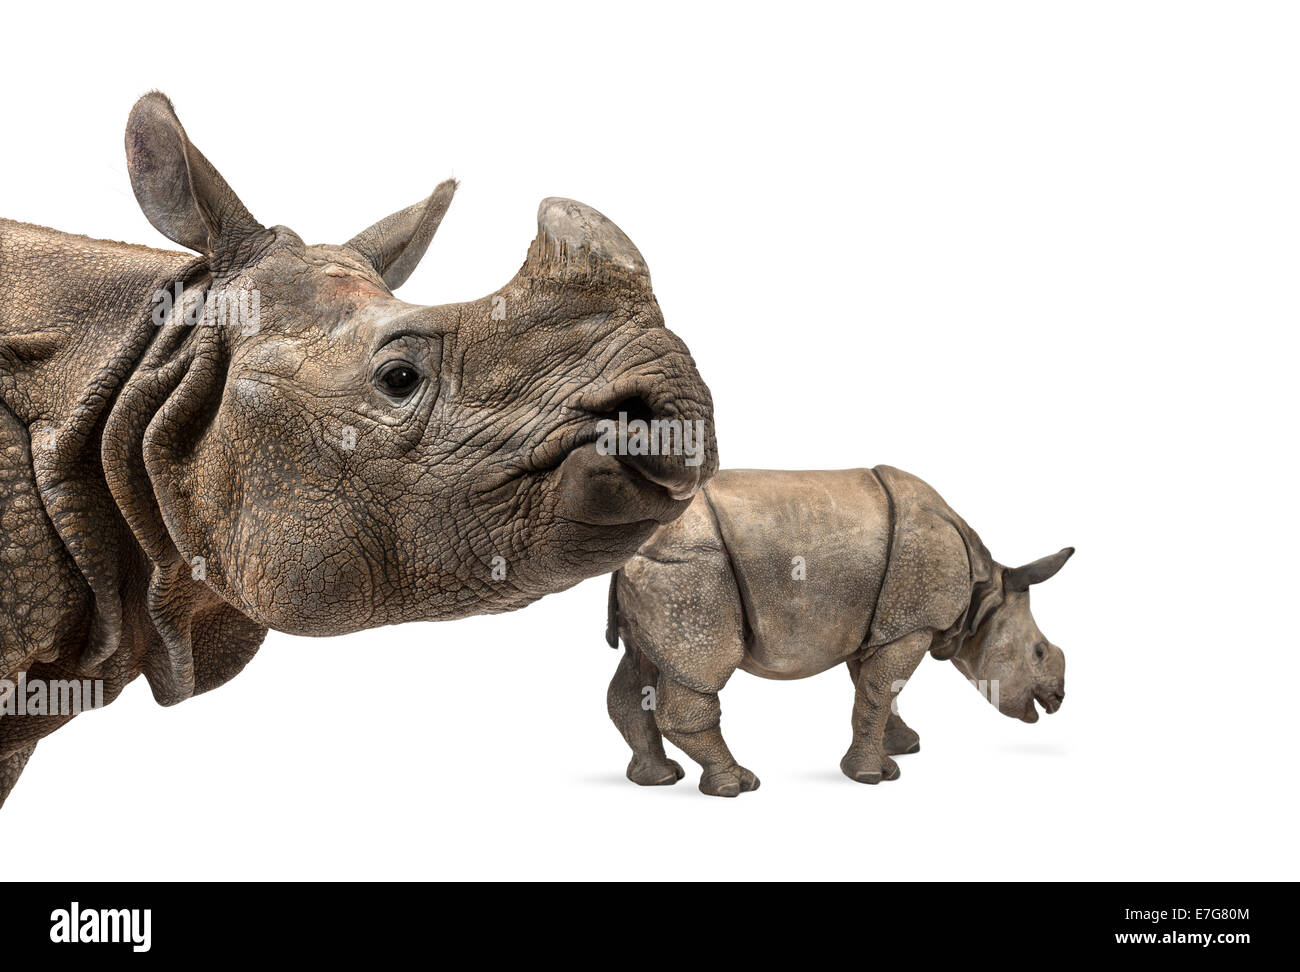 Indian rhinoceros mother and her baby in front of white background Stock Photo